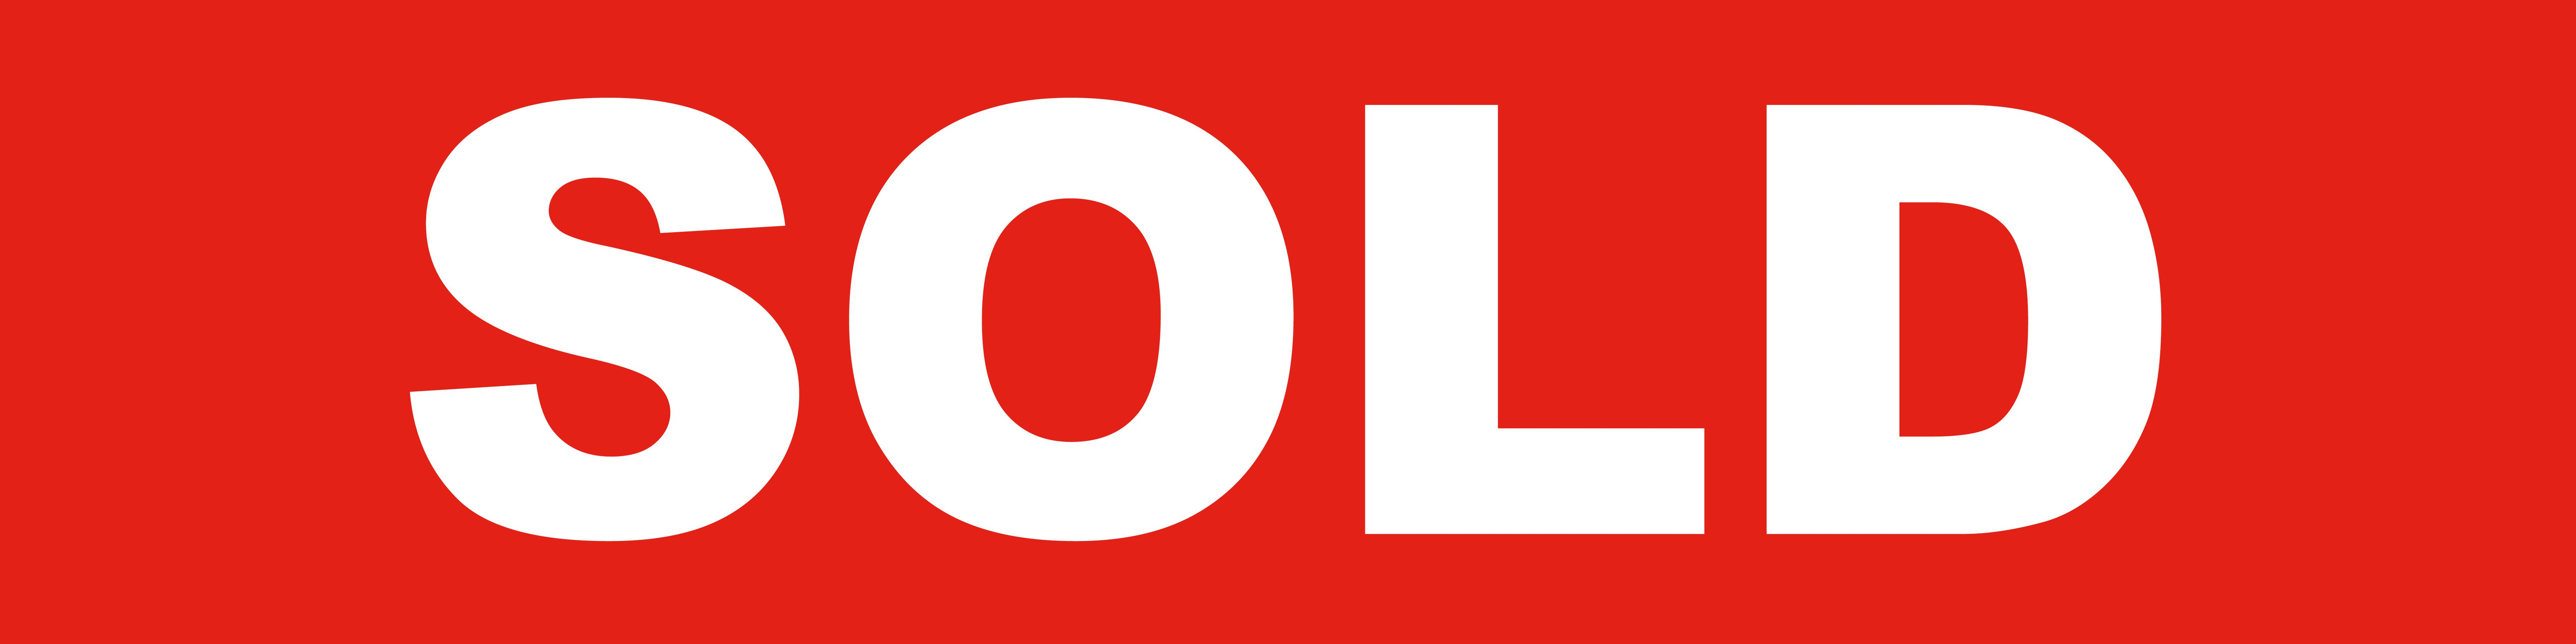 Sold Red Sign